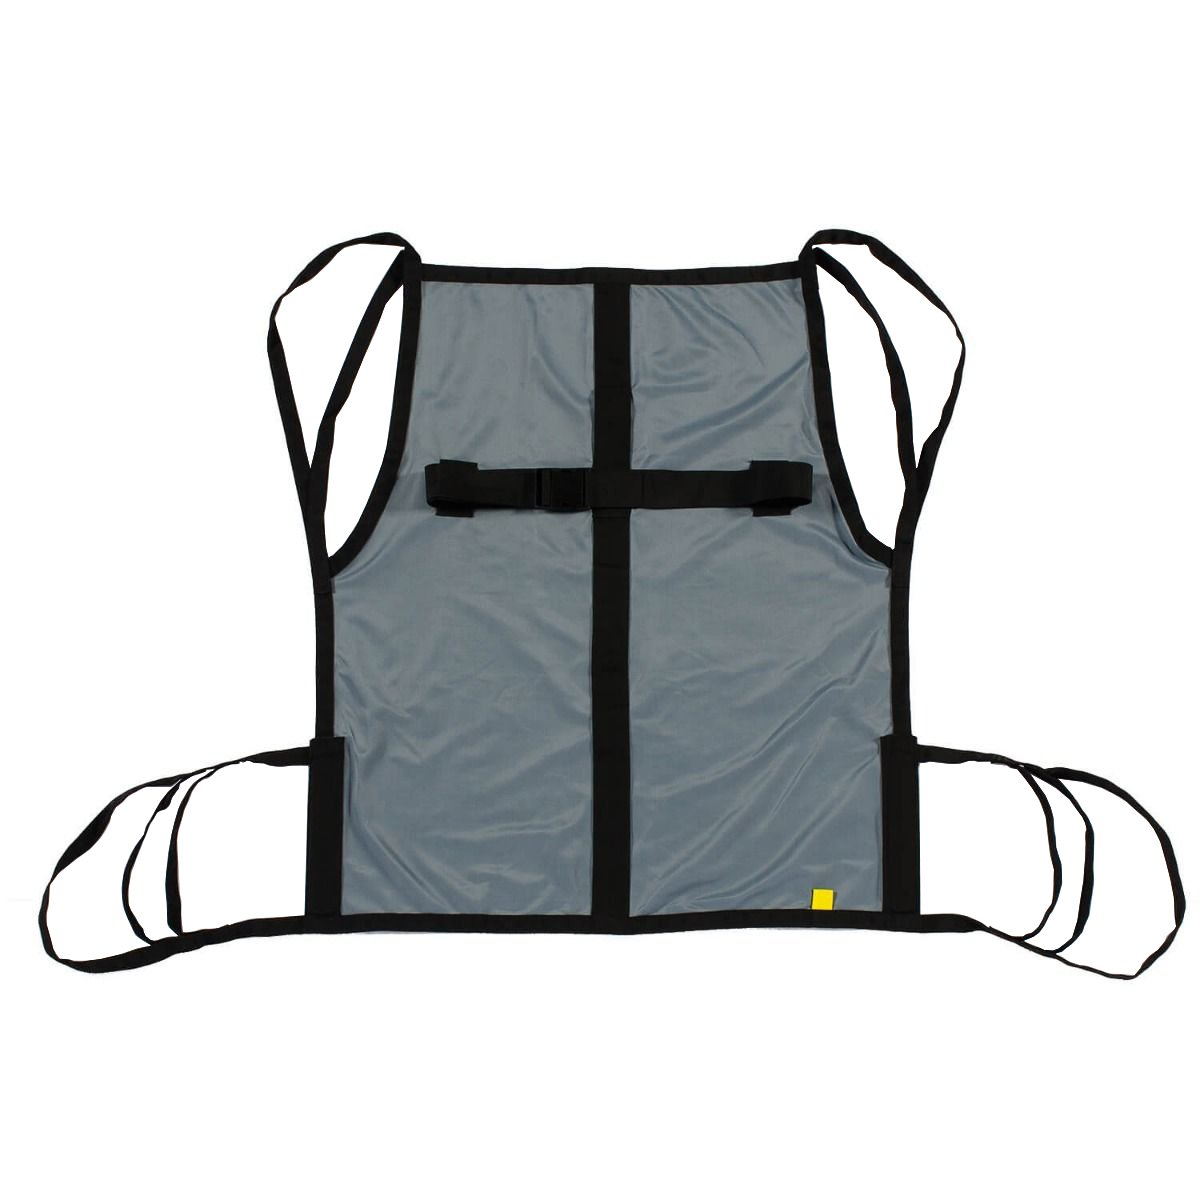 One Piece Patient Lift Sling with Positioning Strap, Size Medium, 600lb Weight Capacity